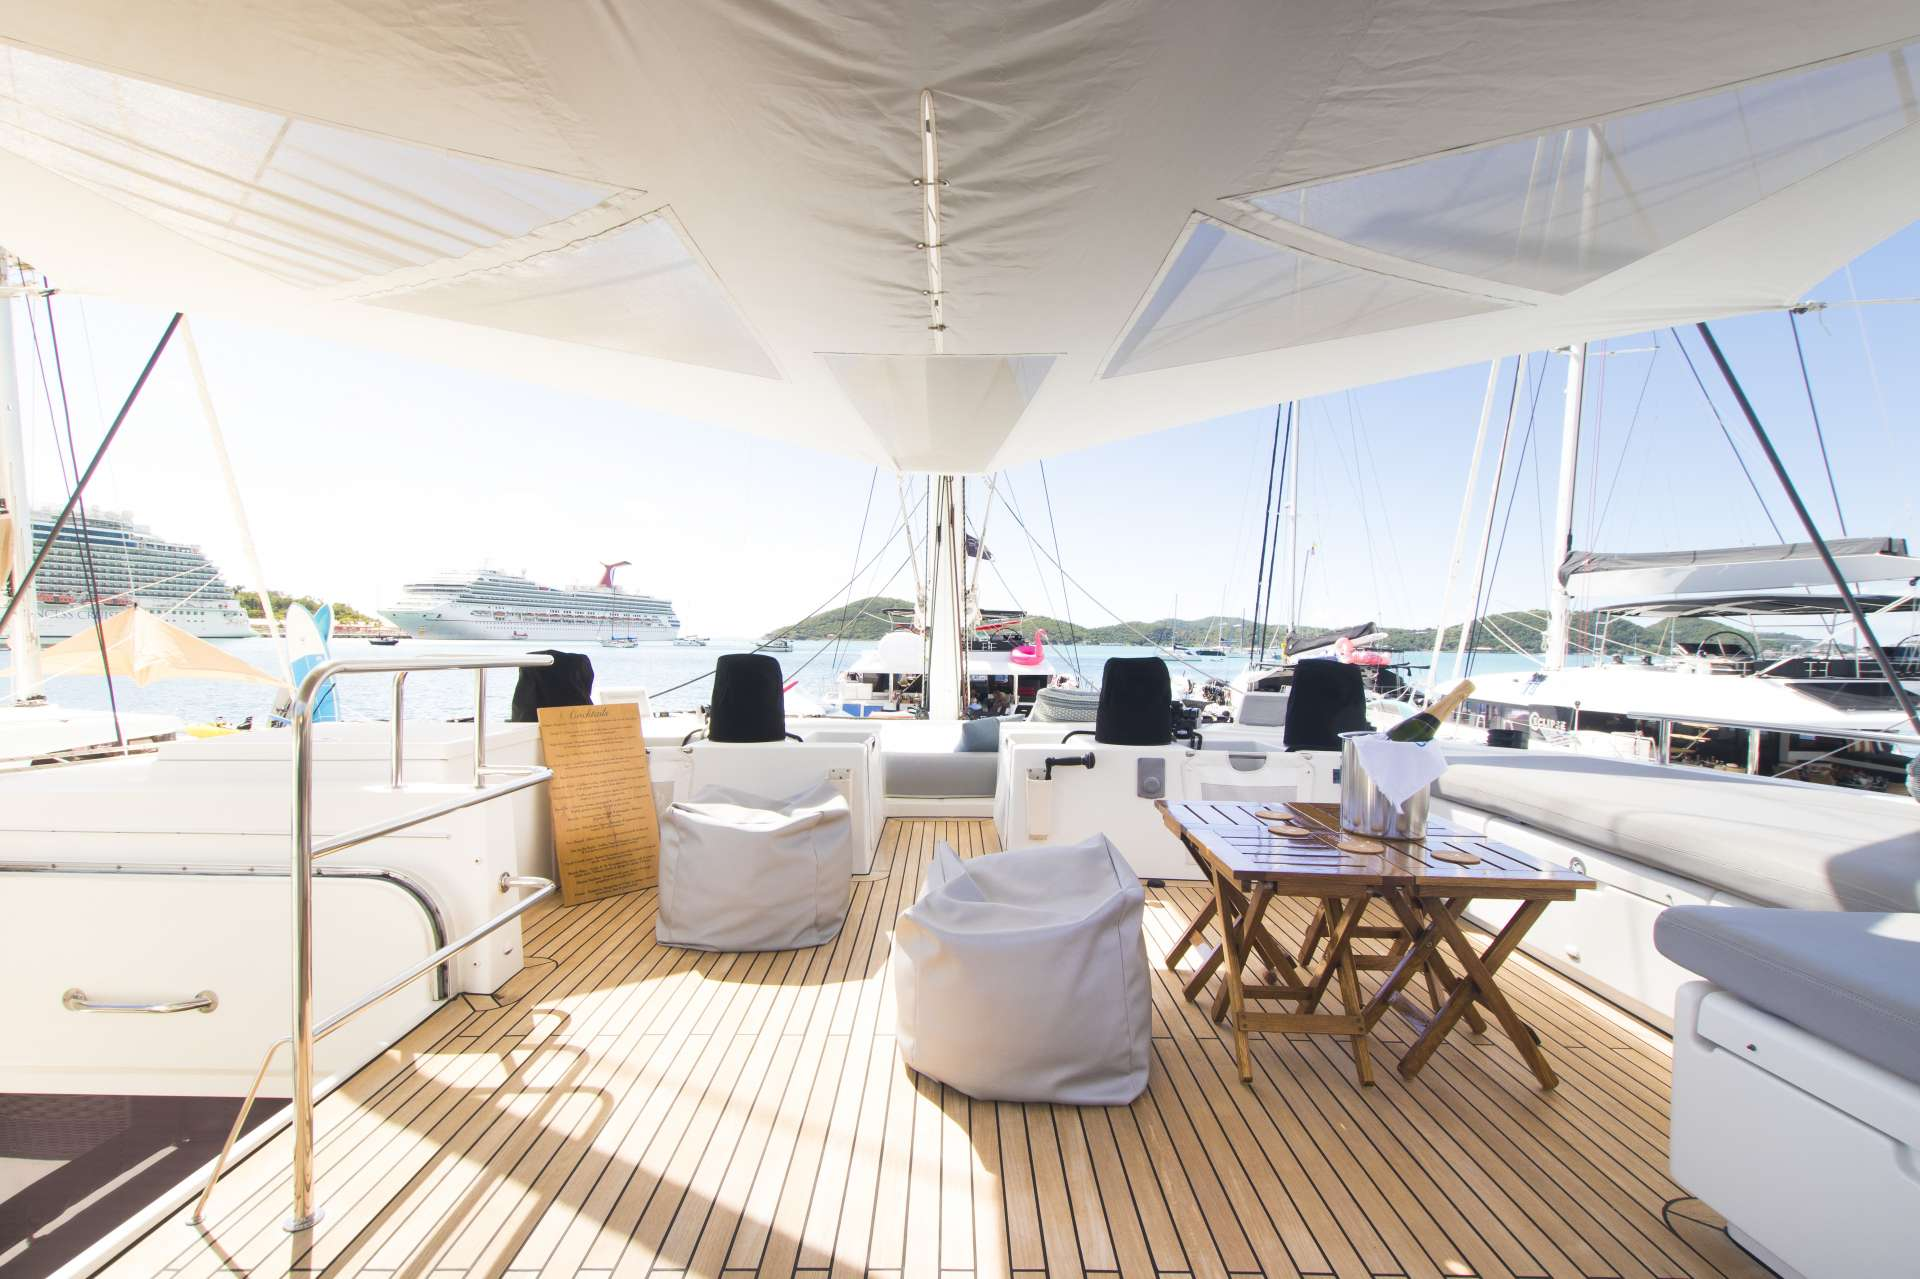 The flybridge lounging area